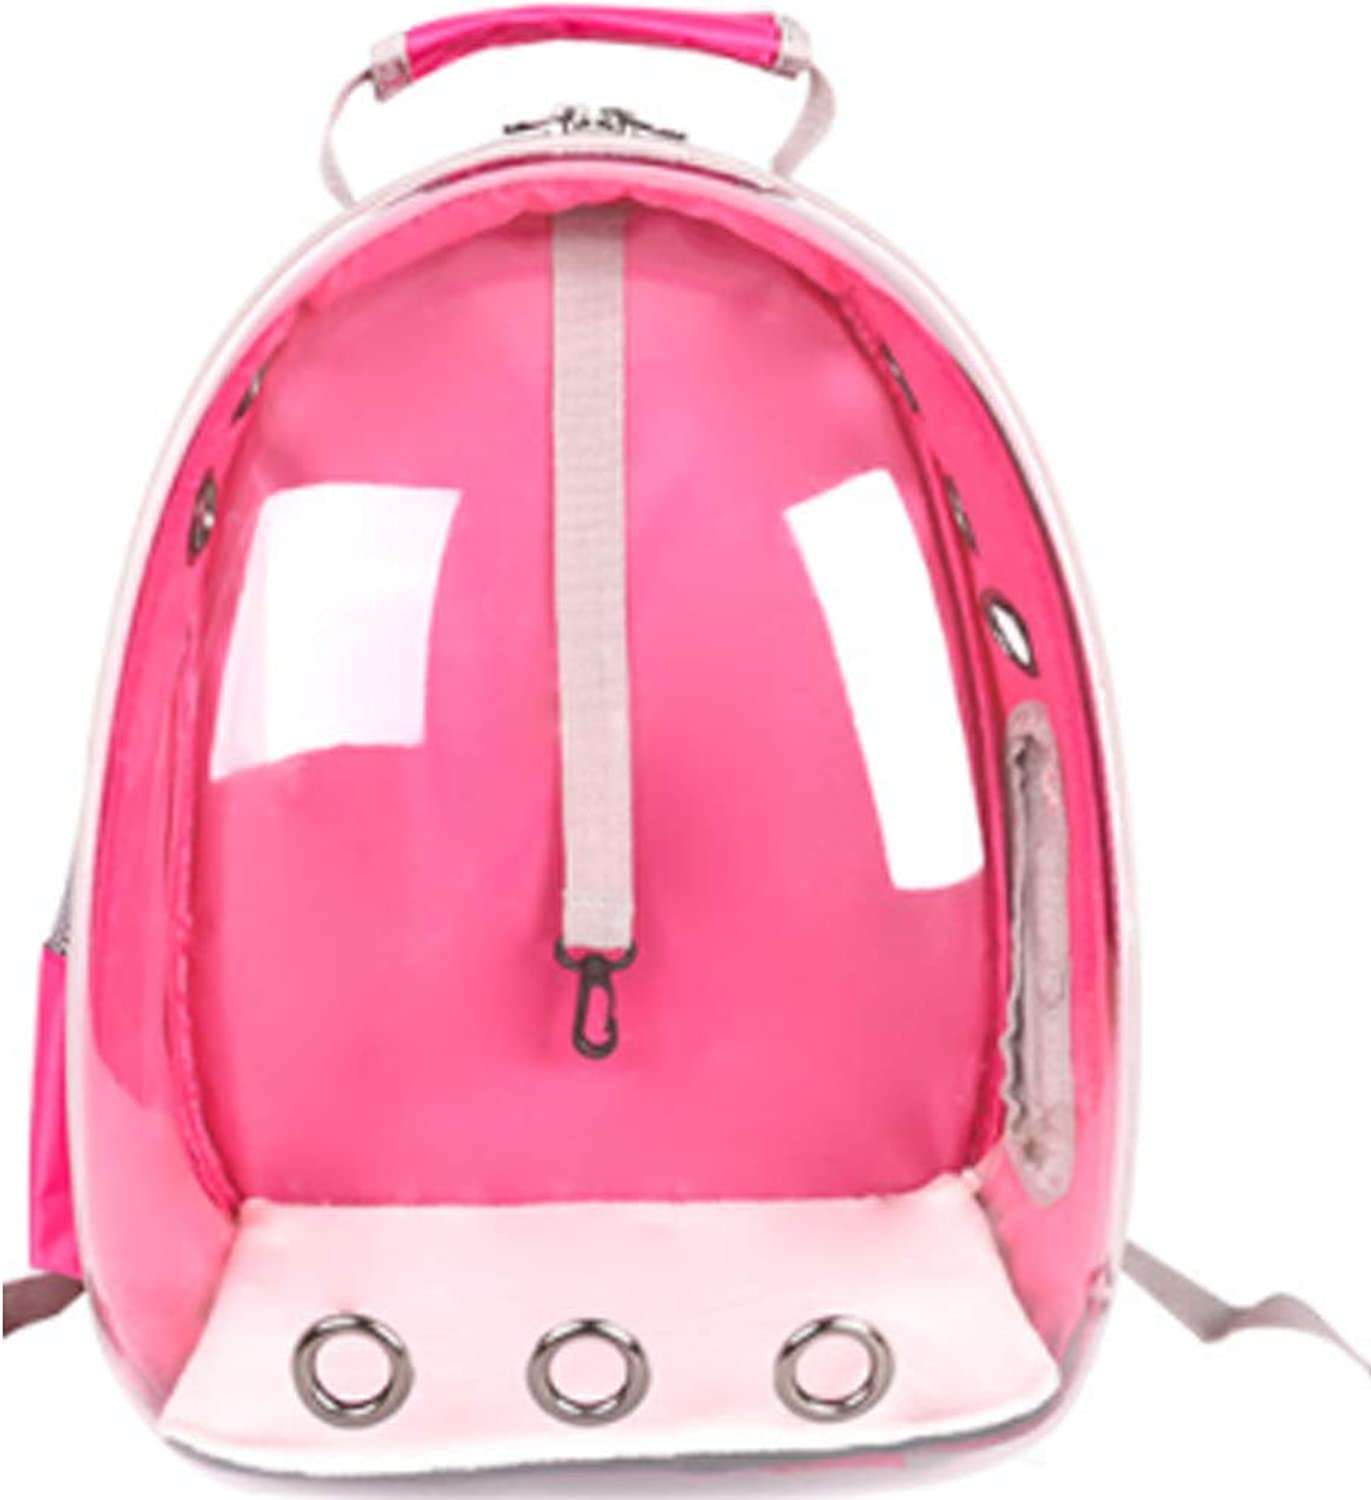 Pet Space Carrier, Transparent Waterproof Cat Holding Backpack with Builtin Safety Hook for Small Animal